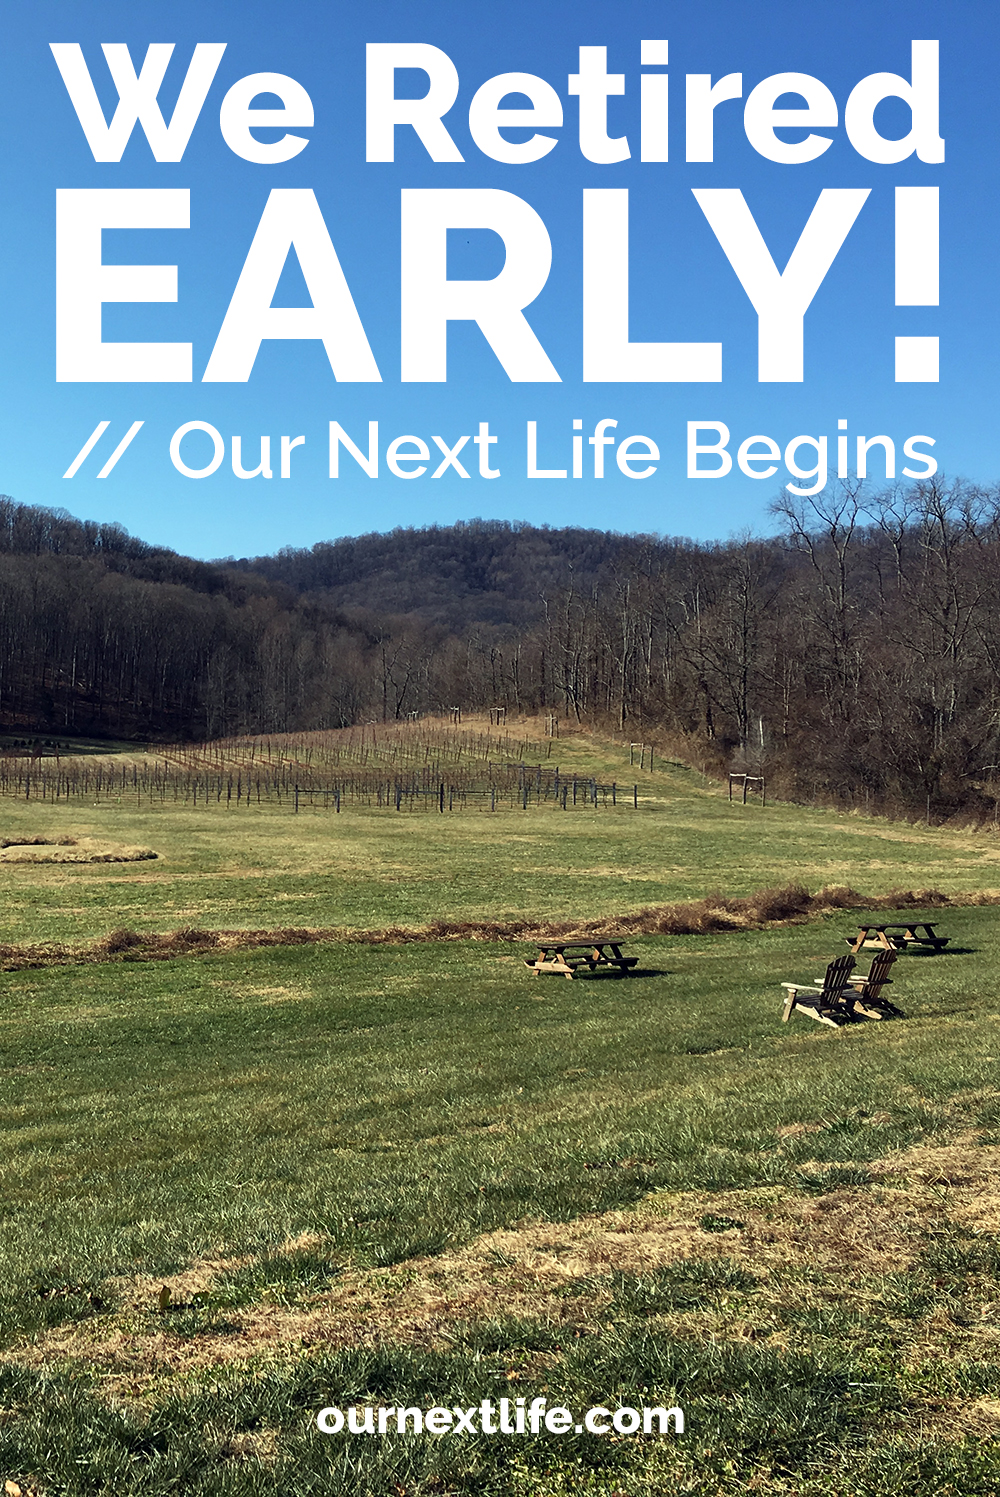 We retired early! Our Next Life begins -- We achieved early retirement at the ages of 38 and 41, and now we begin the next chapter!